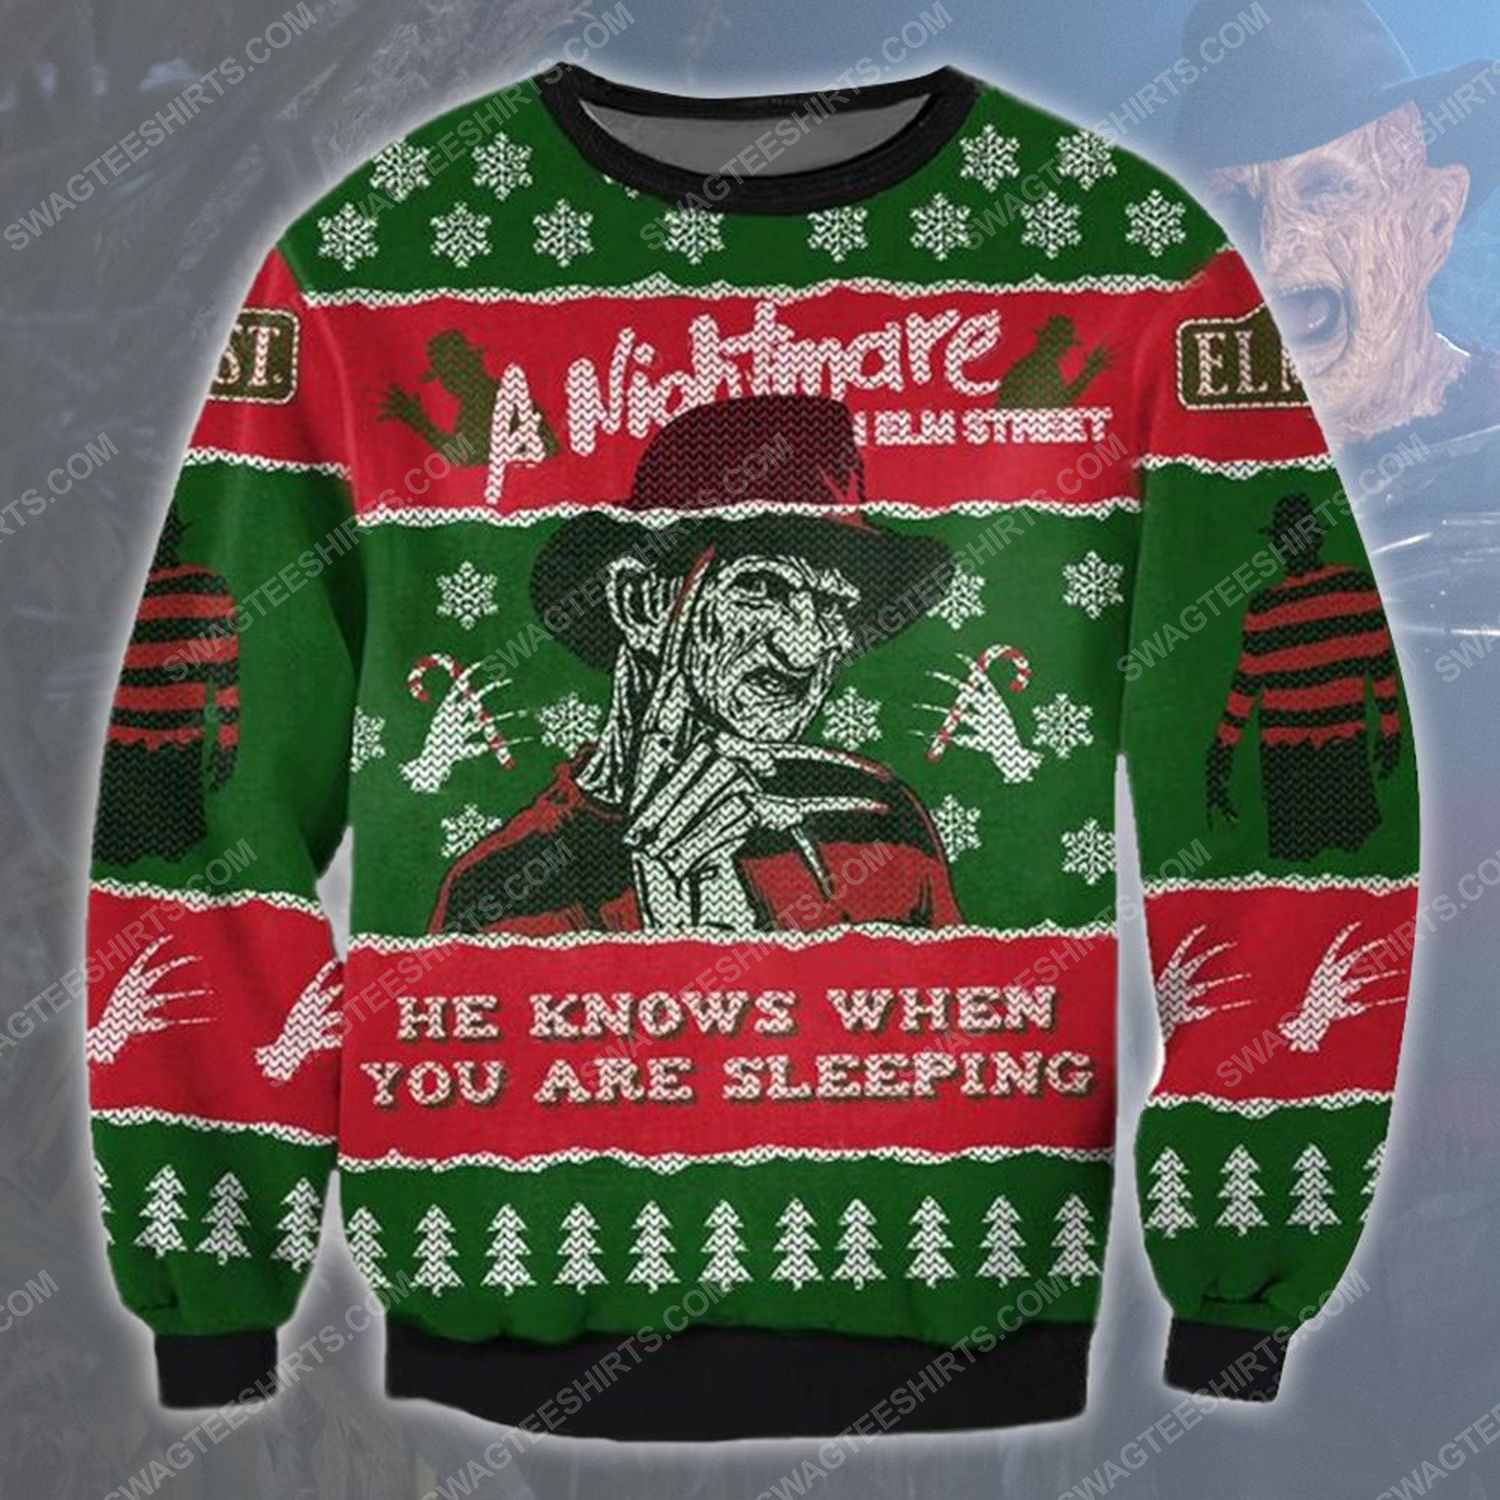 A nightmare on elm street he know when you are sleeping ugly christmas sweater